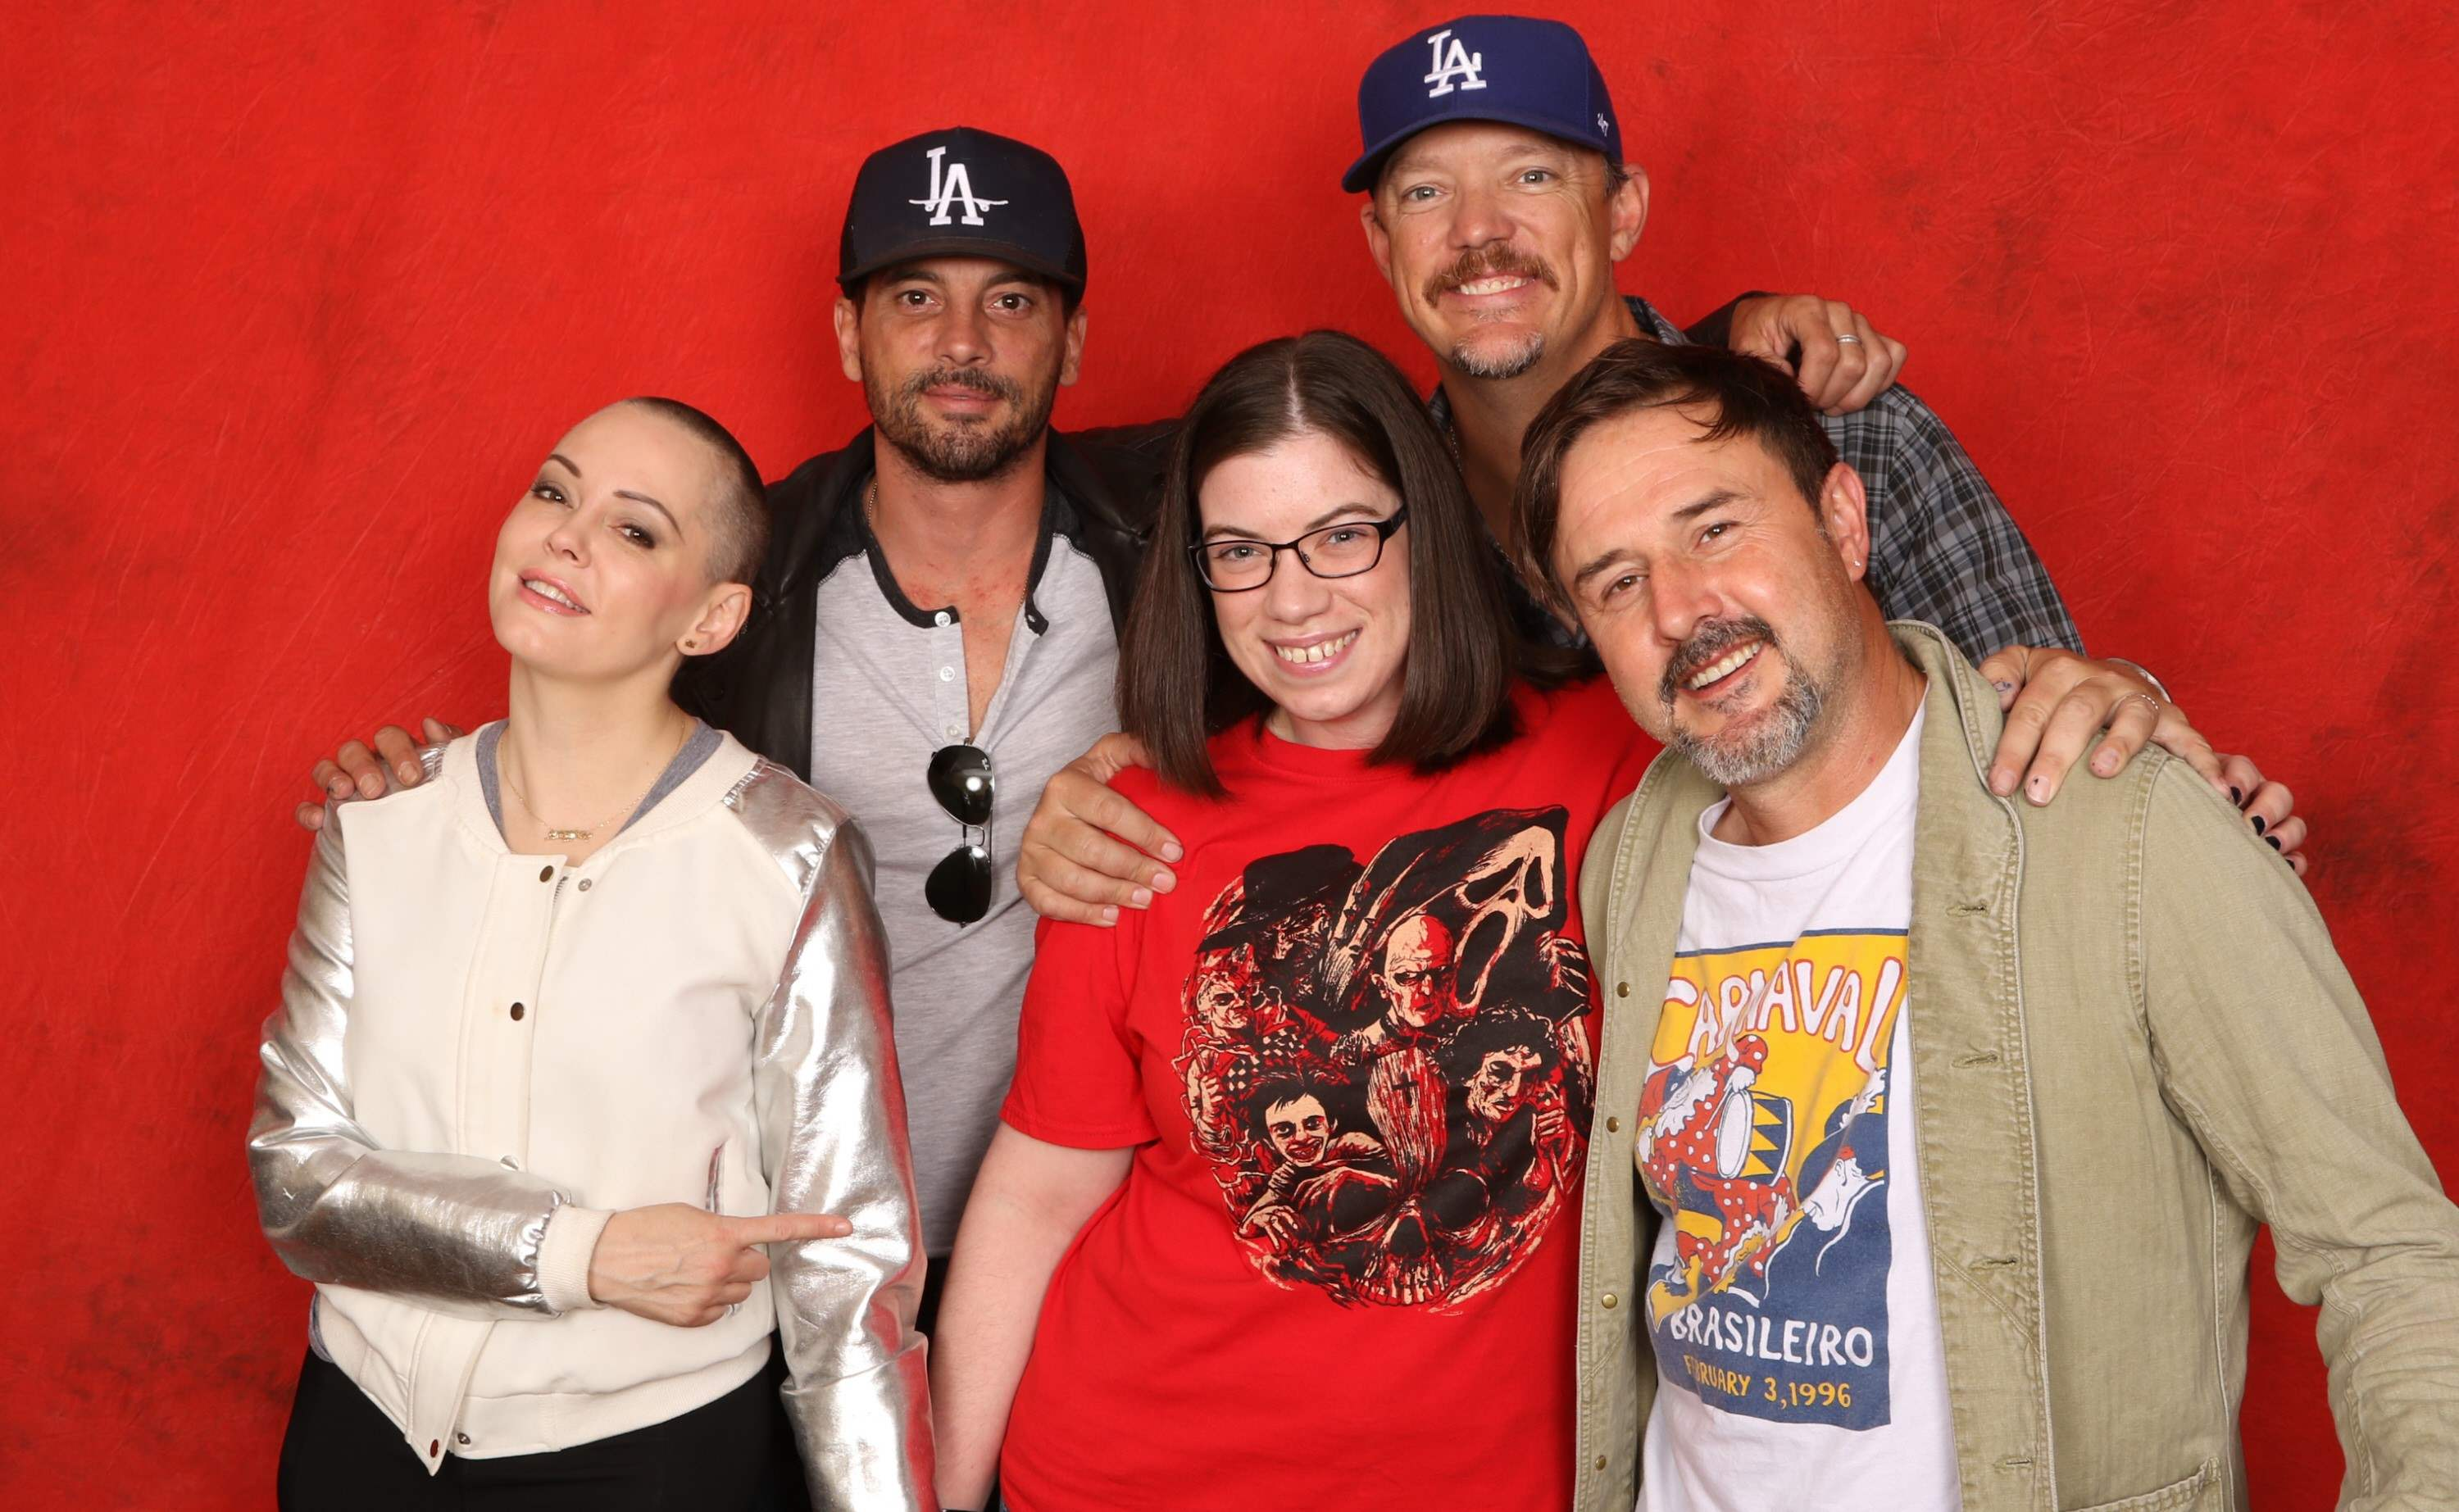 Scream photo op at Texas Frightmare Weekend 2016 with Rose McGowan, Skeet Ulrich, Matthew Lillard, and David Arquette